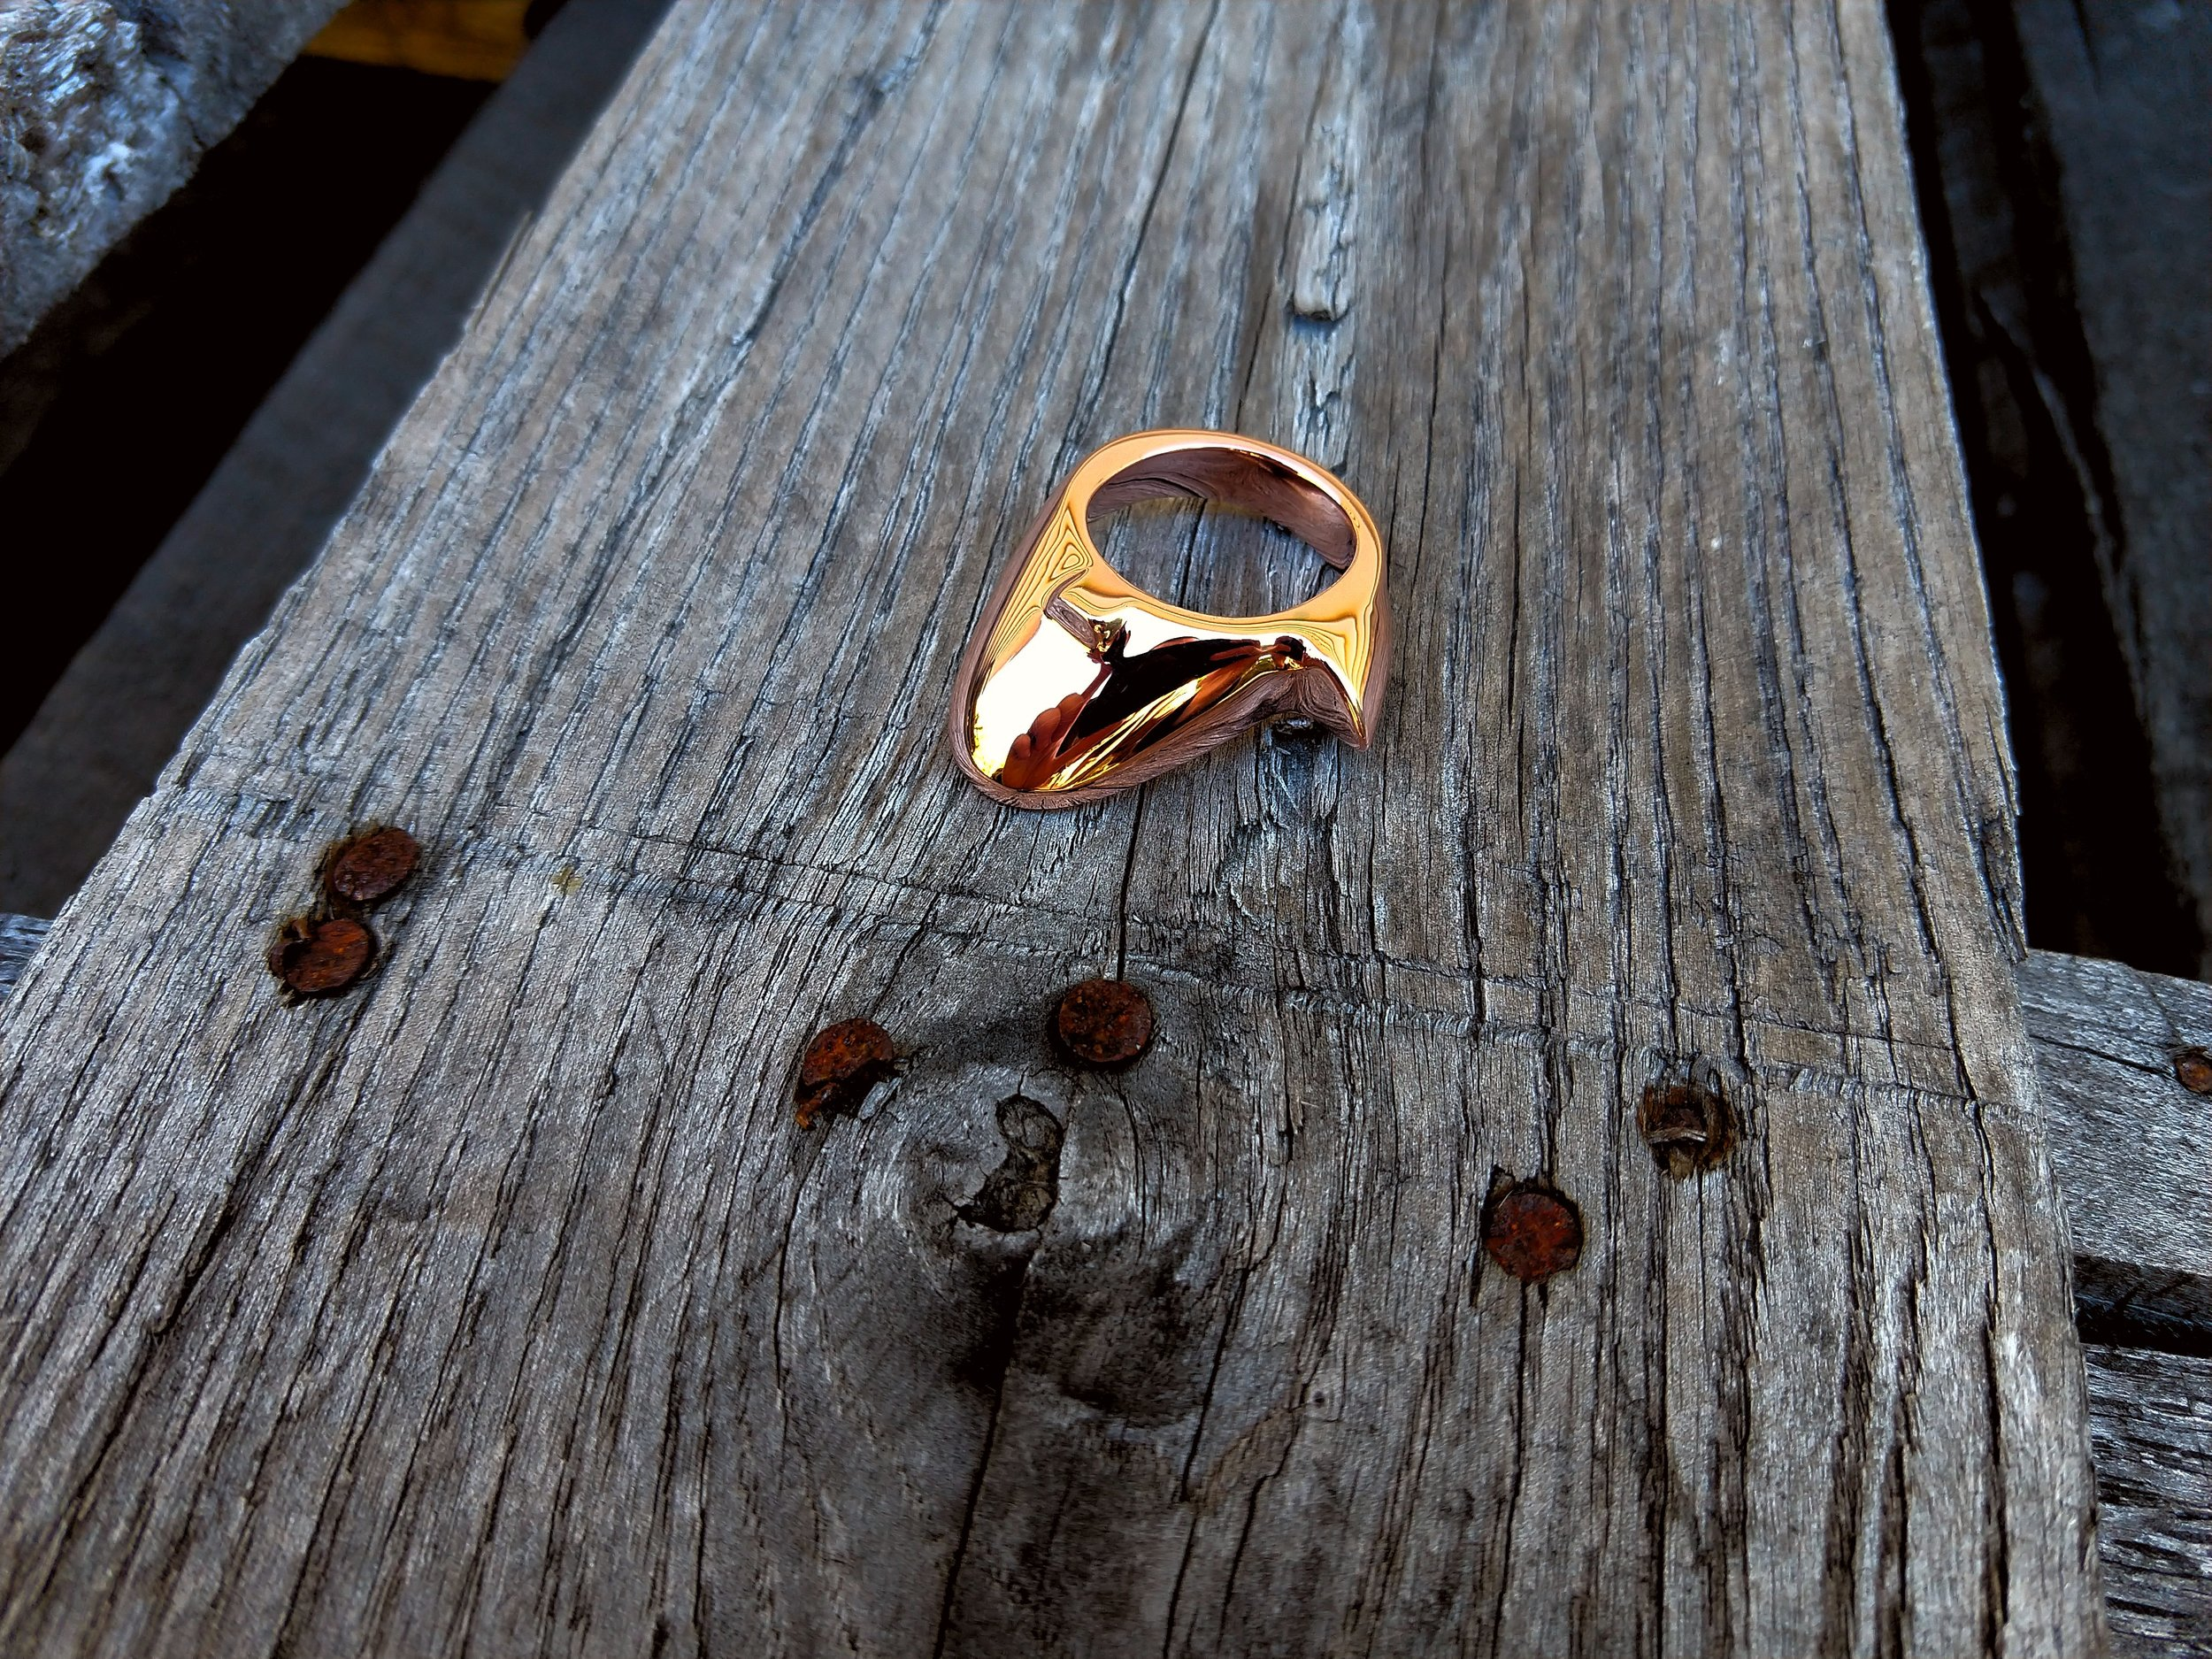 A recombination of our tongue and chinese spur rings in solid copper.